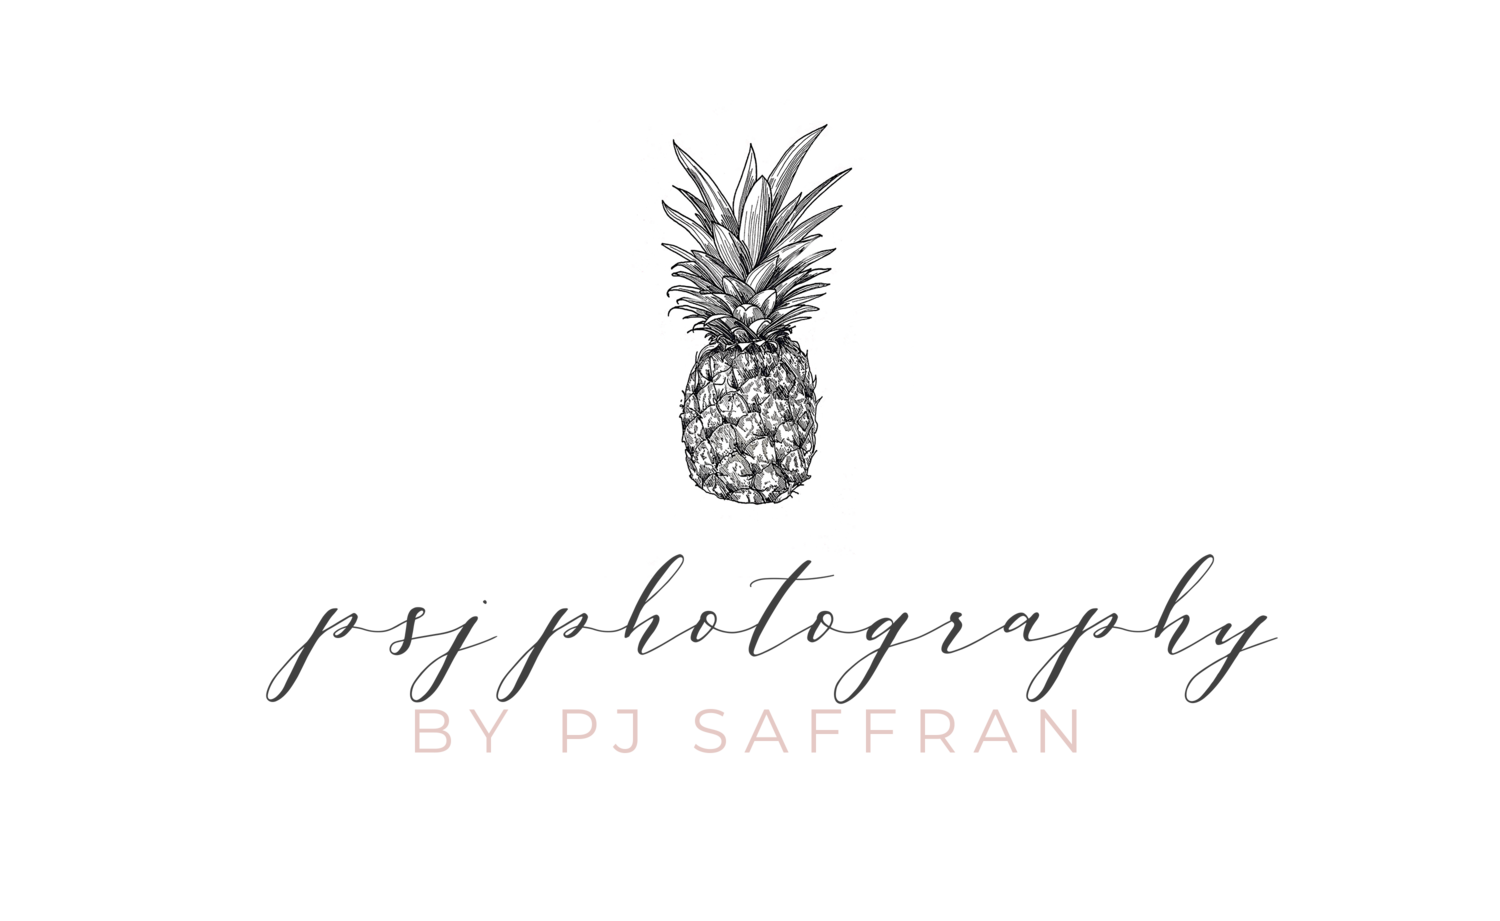 PSJ Photography by pj saffran